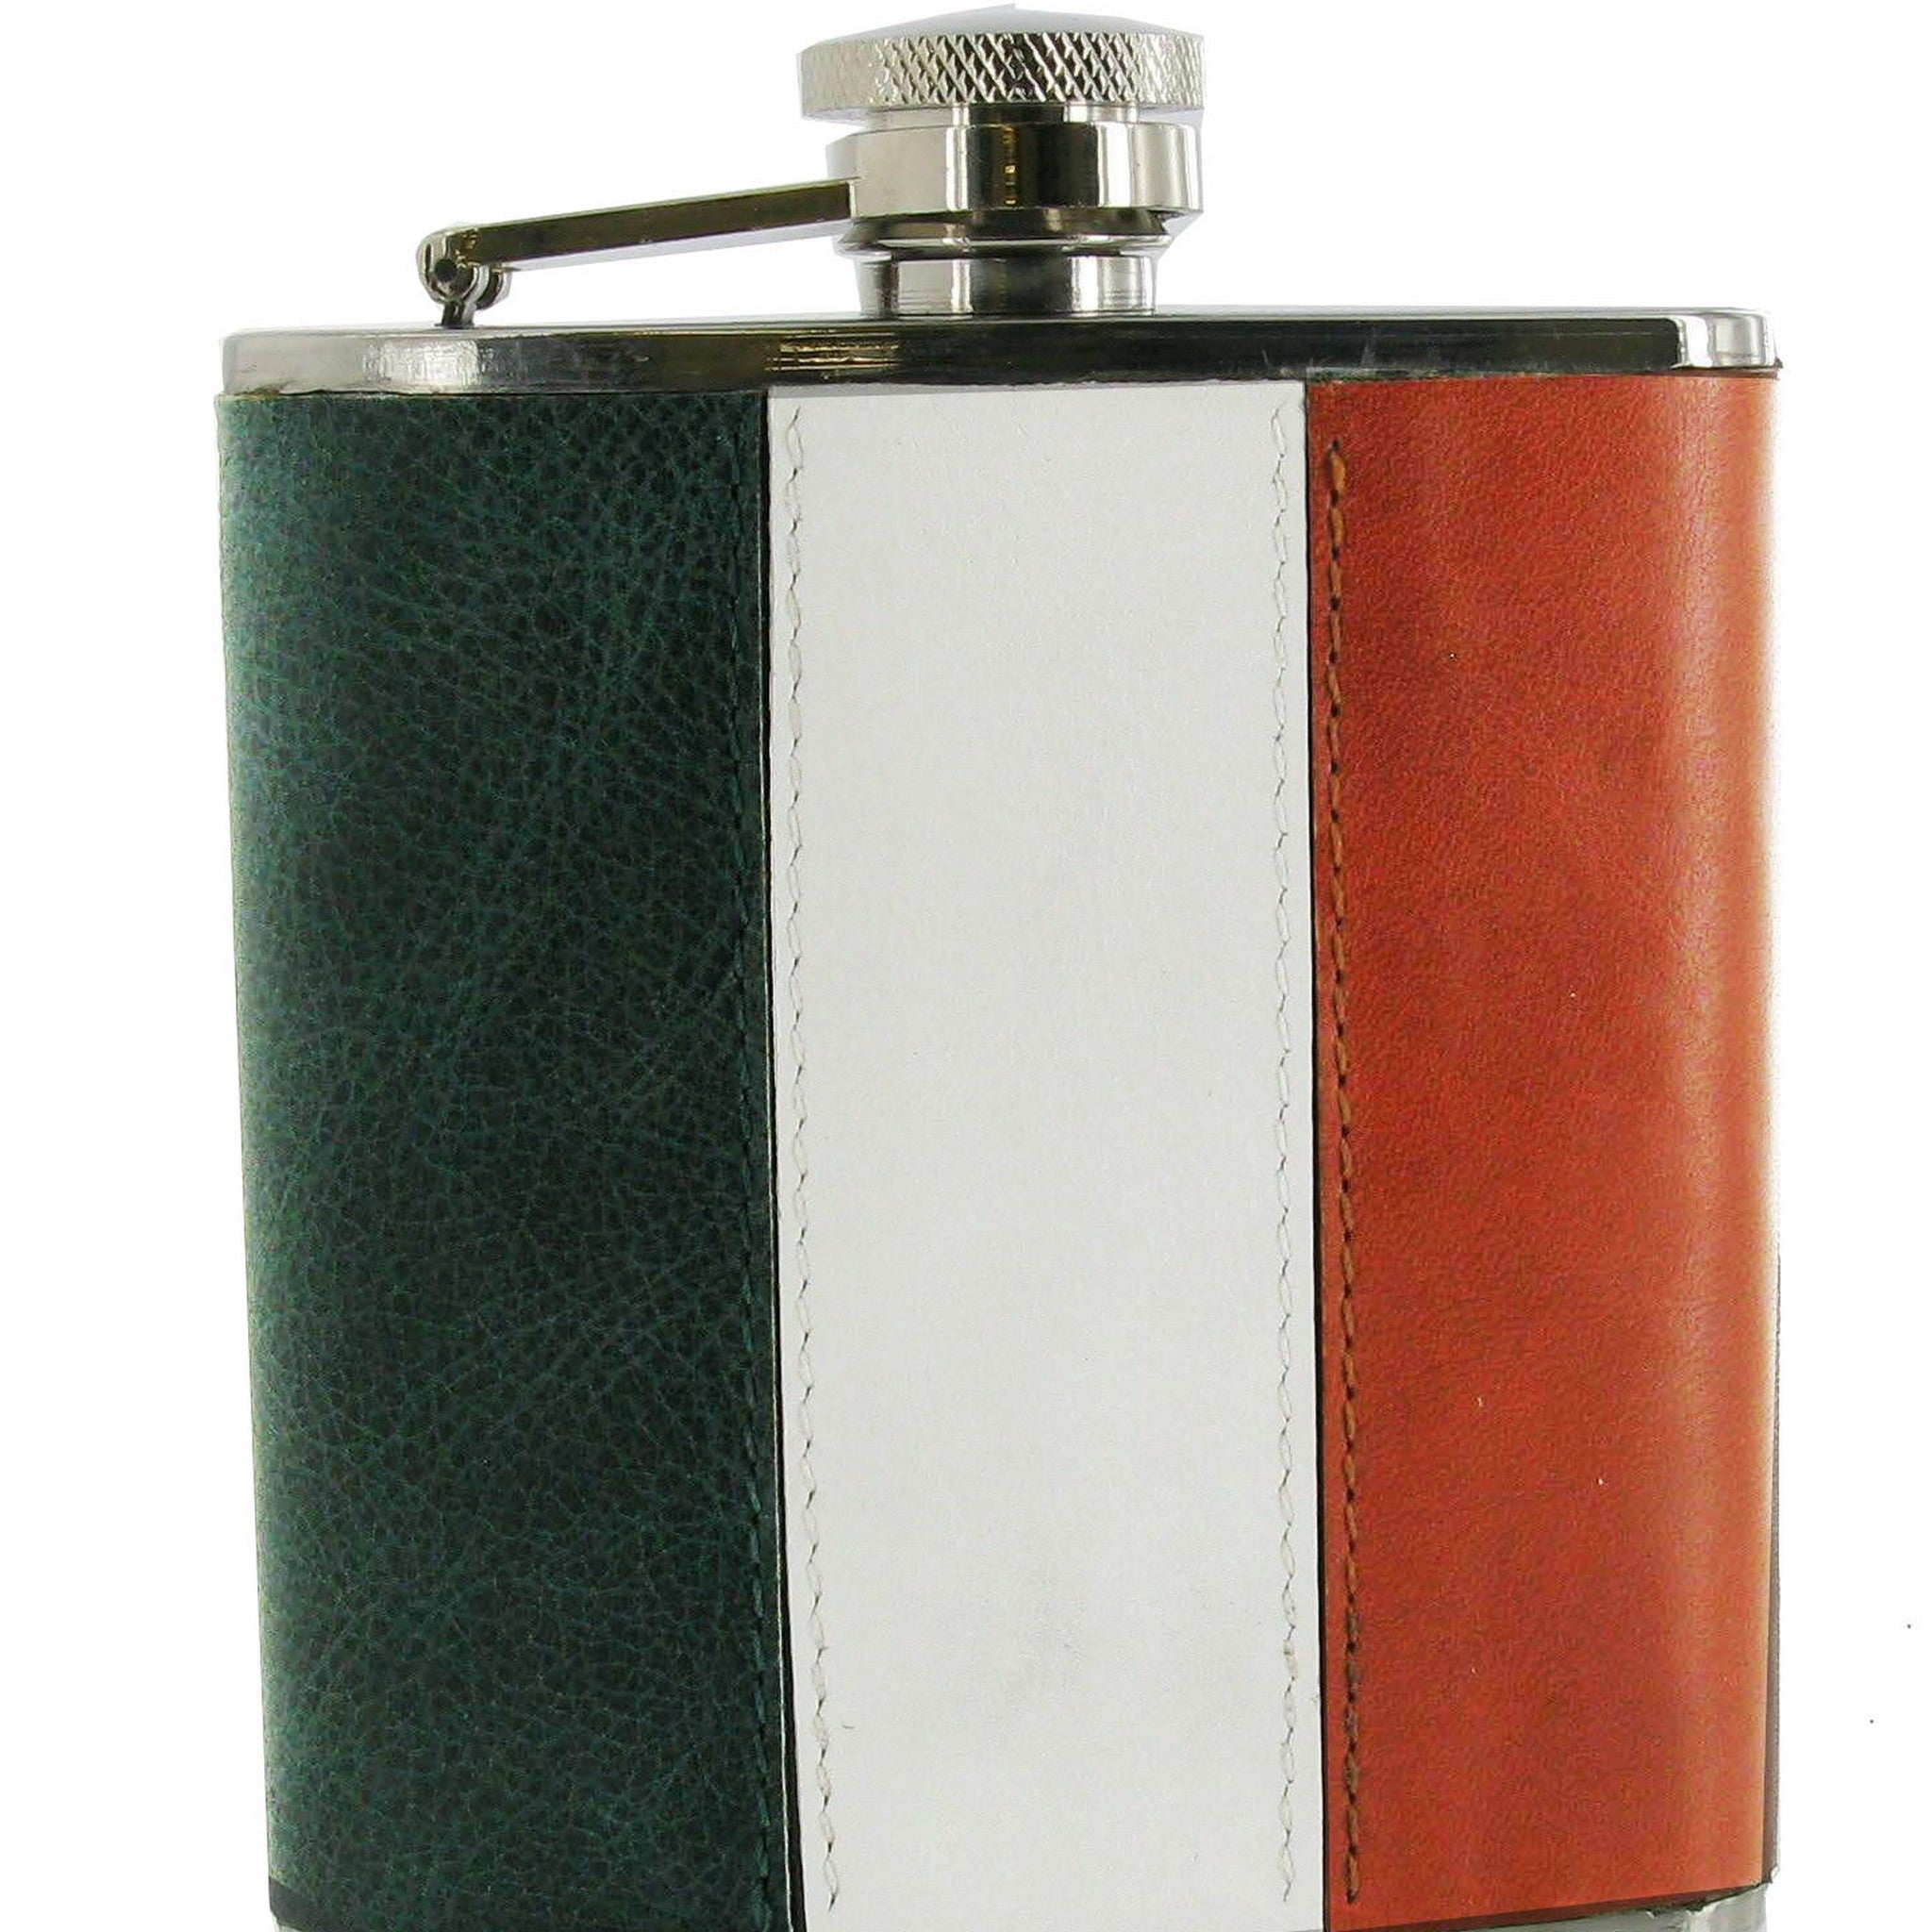 Leather Covered Irish Tricolour Flag Design Stainless Steel Hip Flask